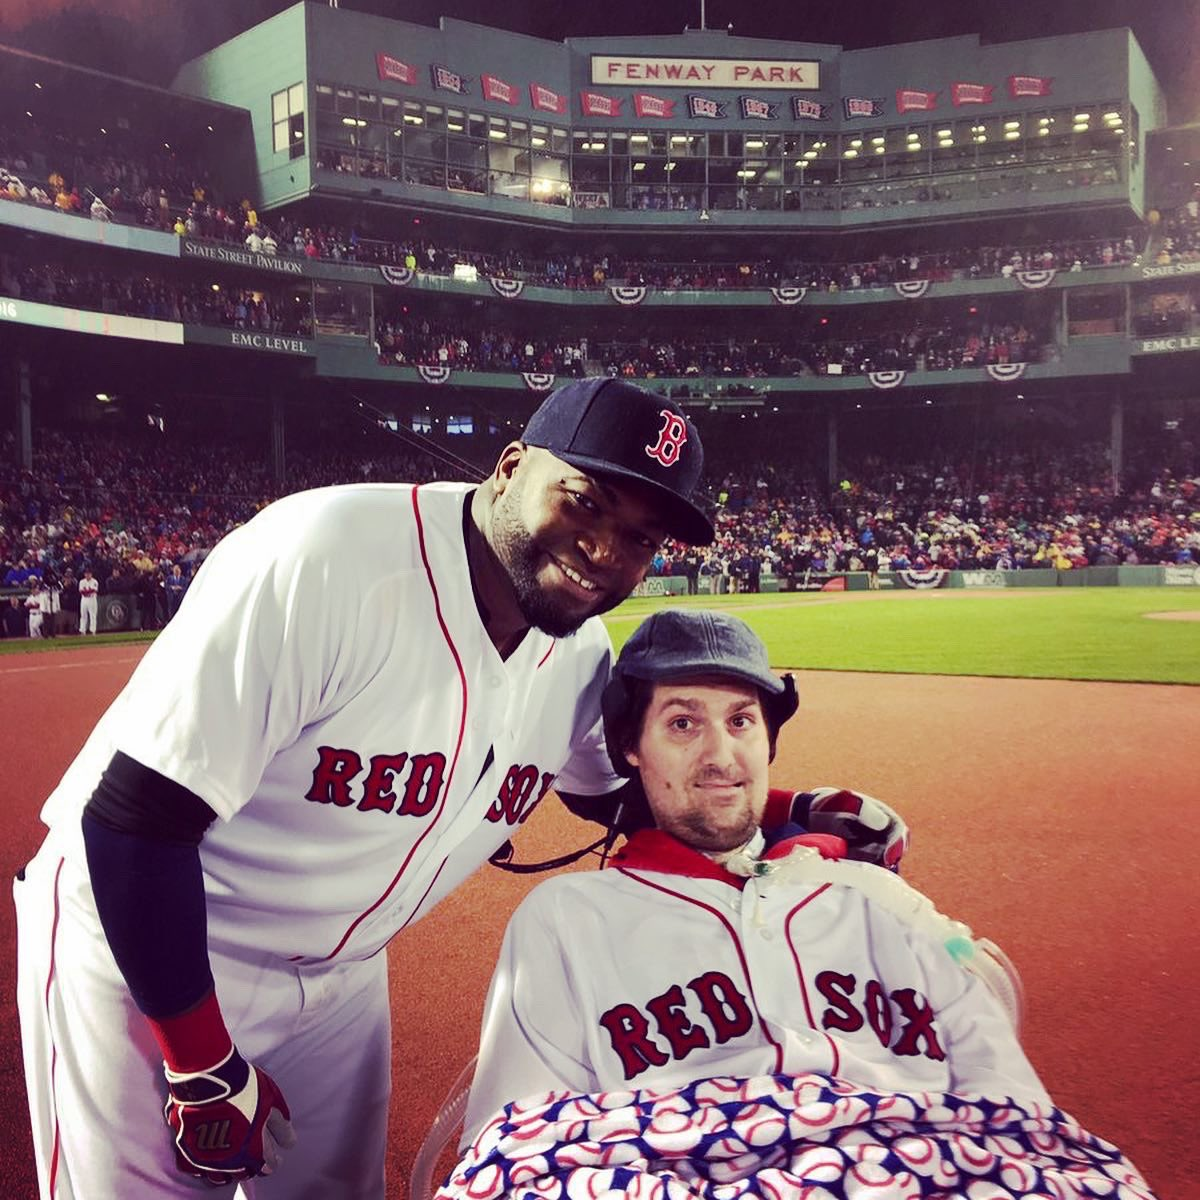 You changed the world Pete. Im so very proud to have called you my friend. Heart hurts a lot today but ur name and legacy will live on forever. Rest easy my friend - we'll continue to spread your word. Boston was so lucky to have you 😔🙏🏿 #BostonStrong #alsicebucketchallenge #rip